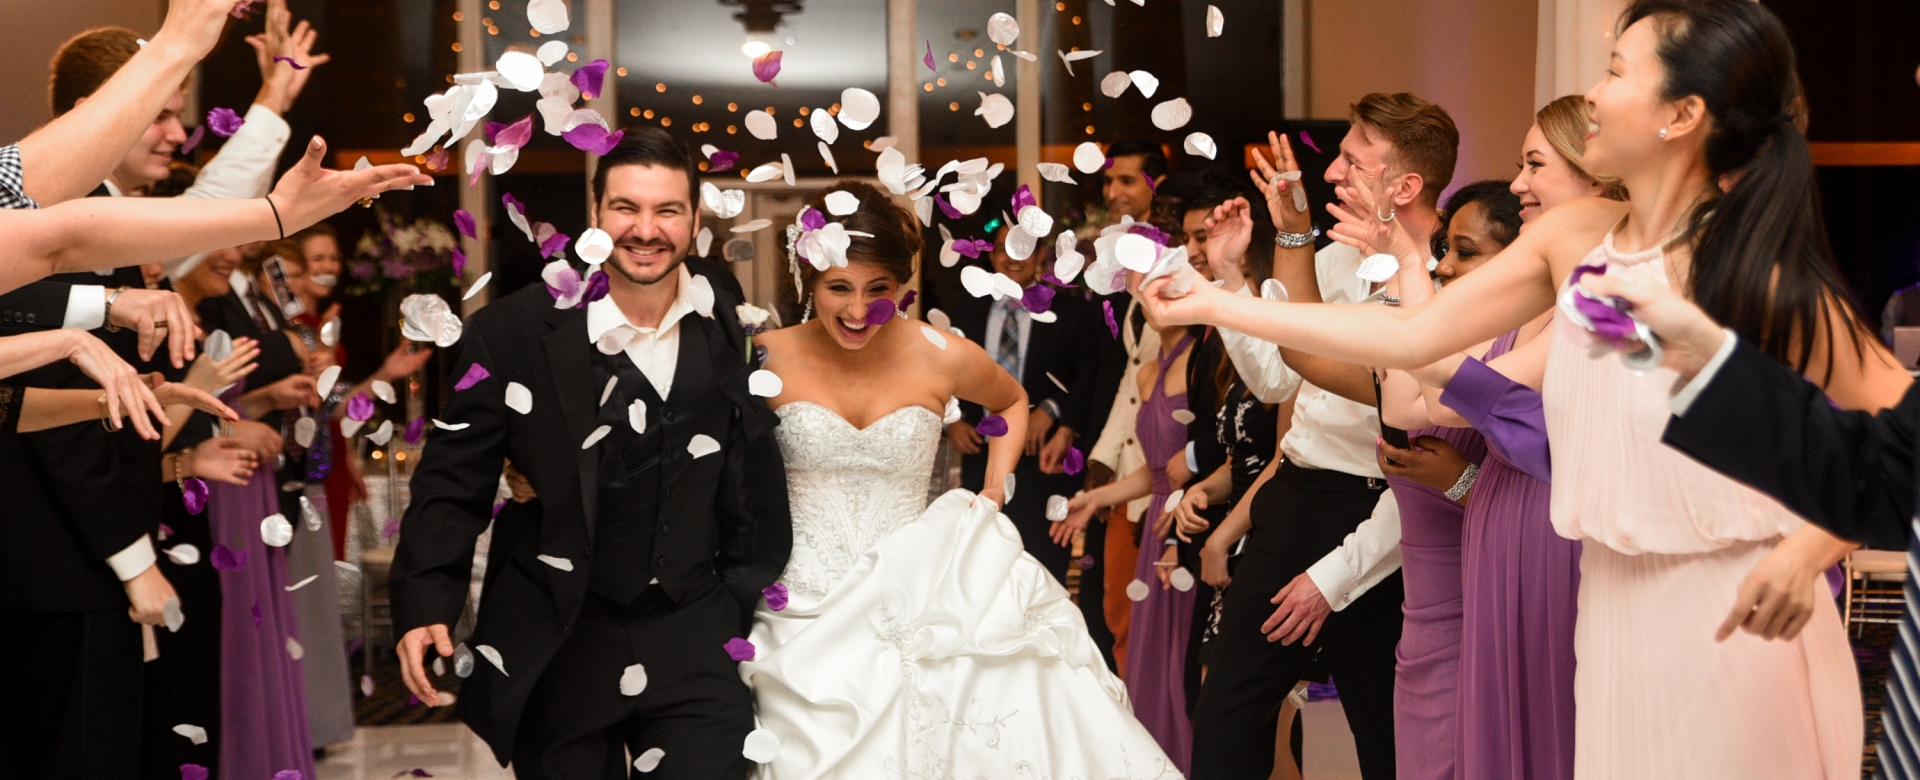 A groom and bride are showered with white and purple petals.